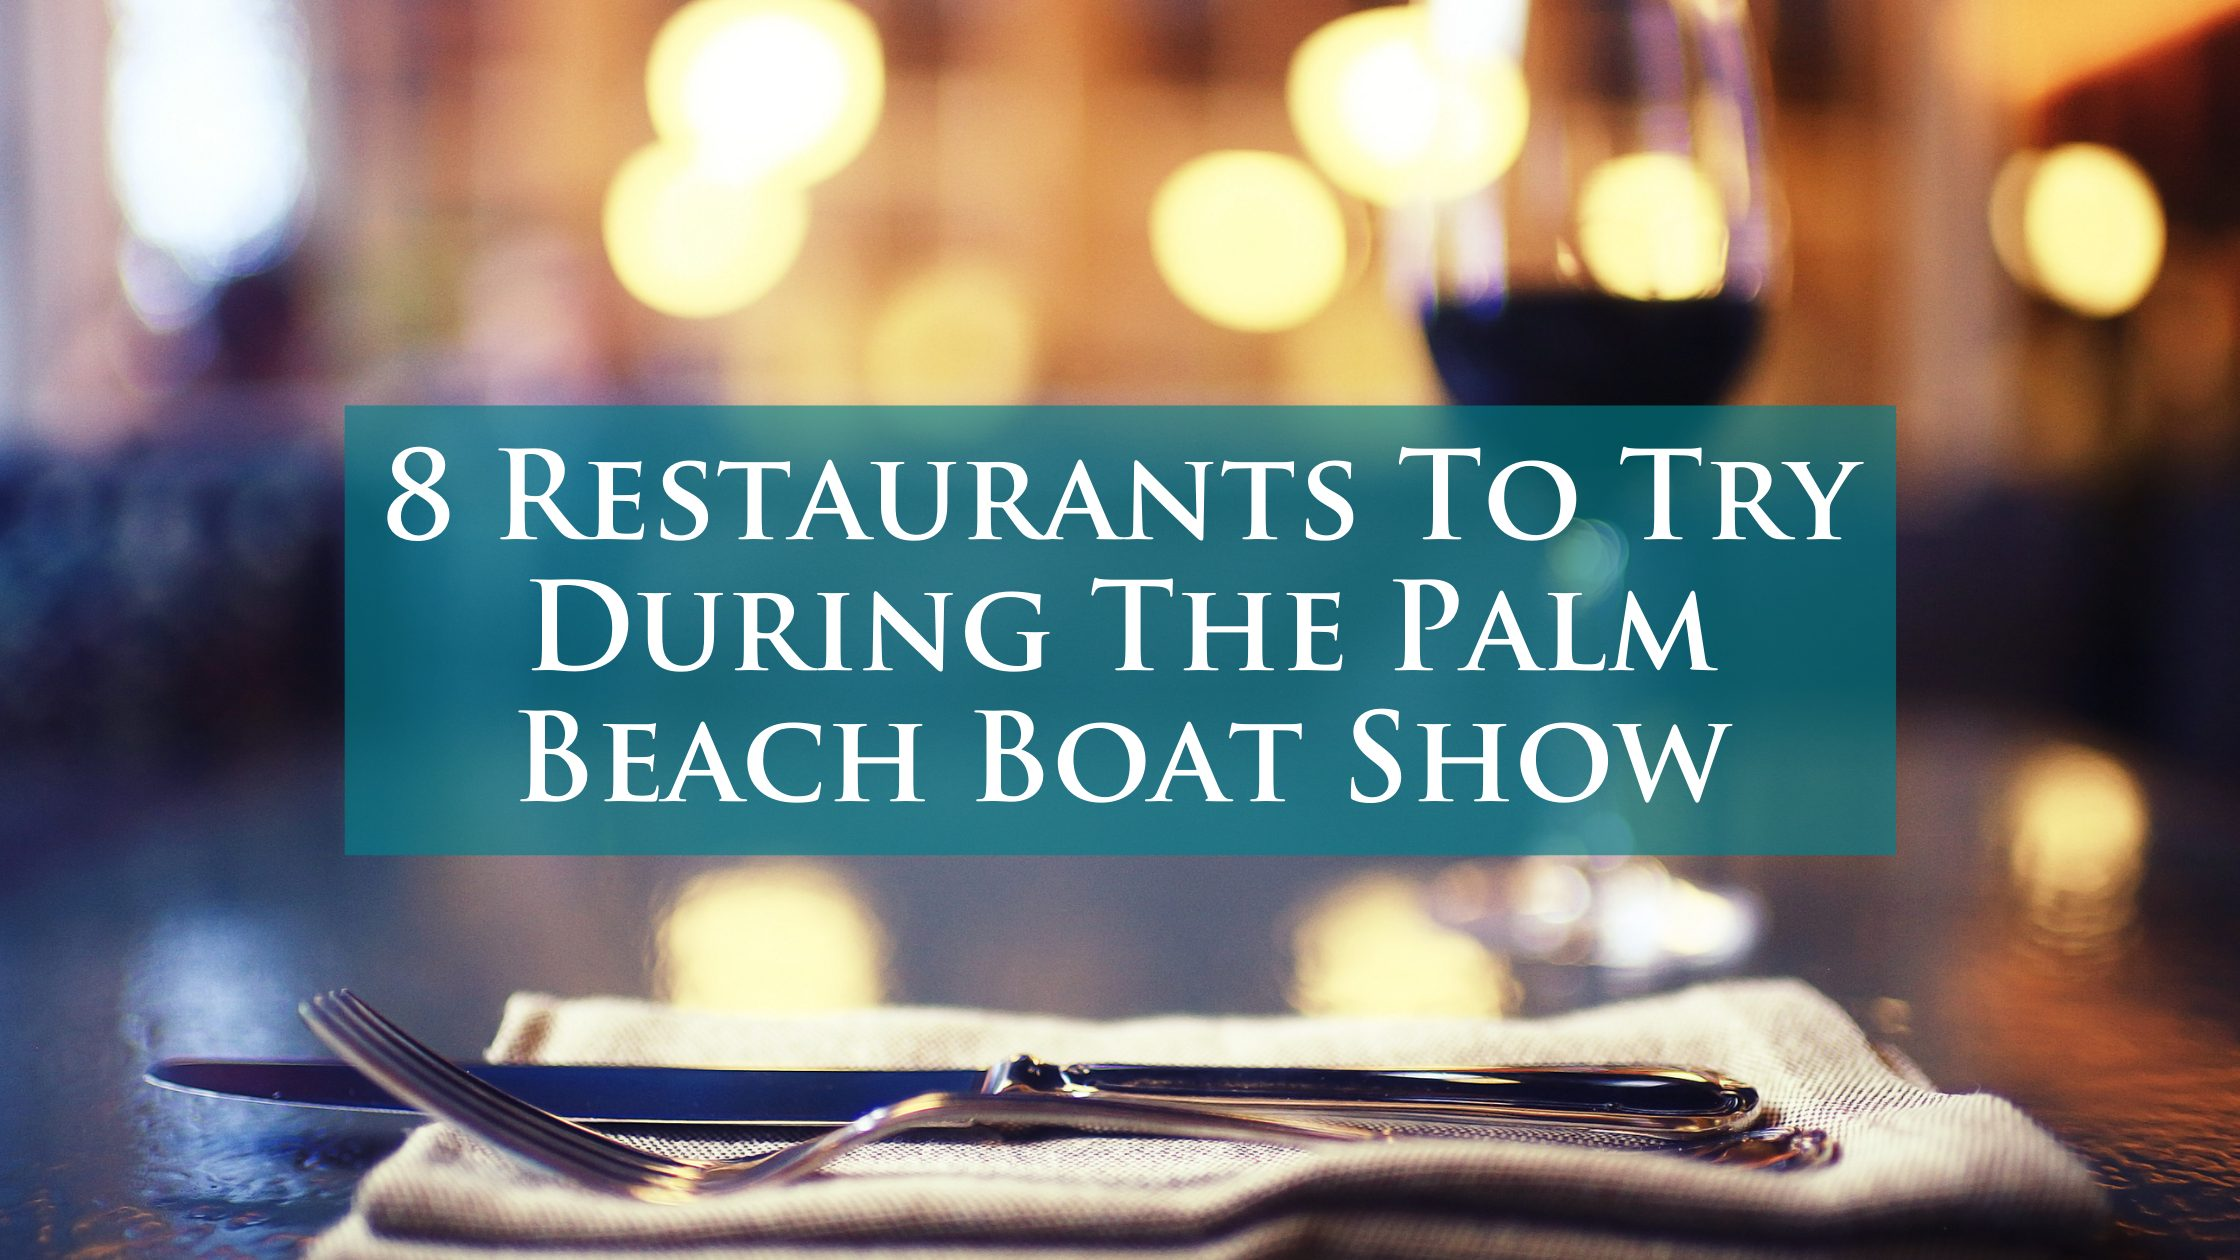 Your Guide To Dining During The Palm Beach Boat Show